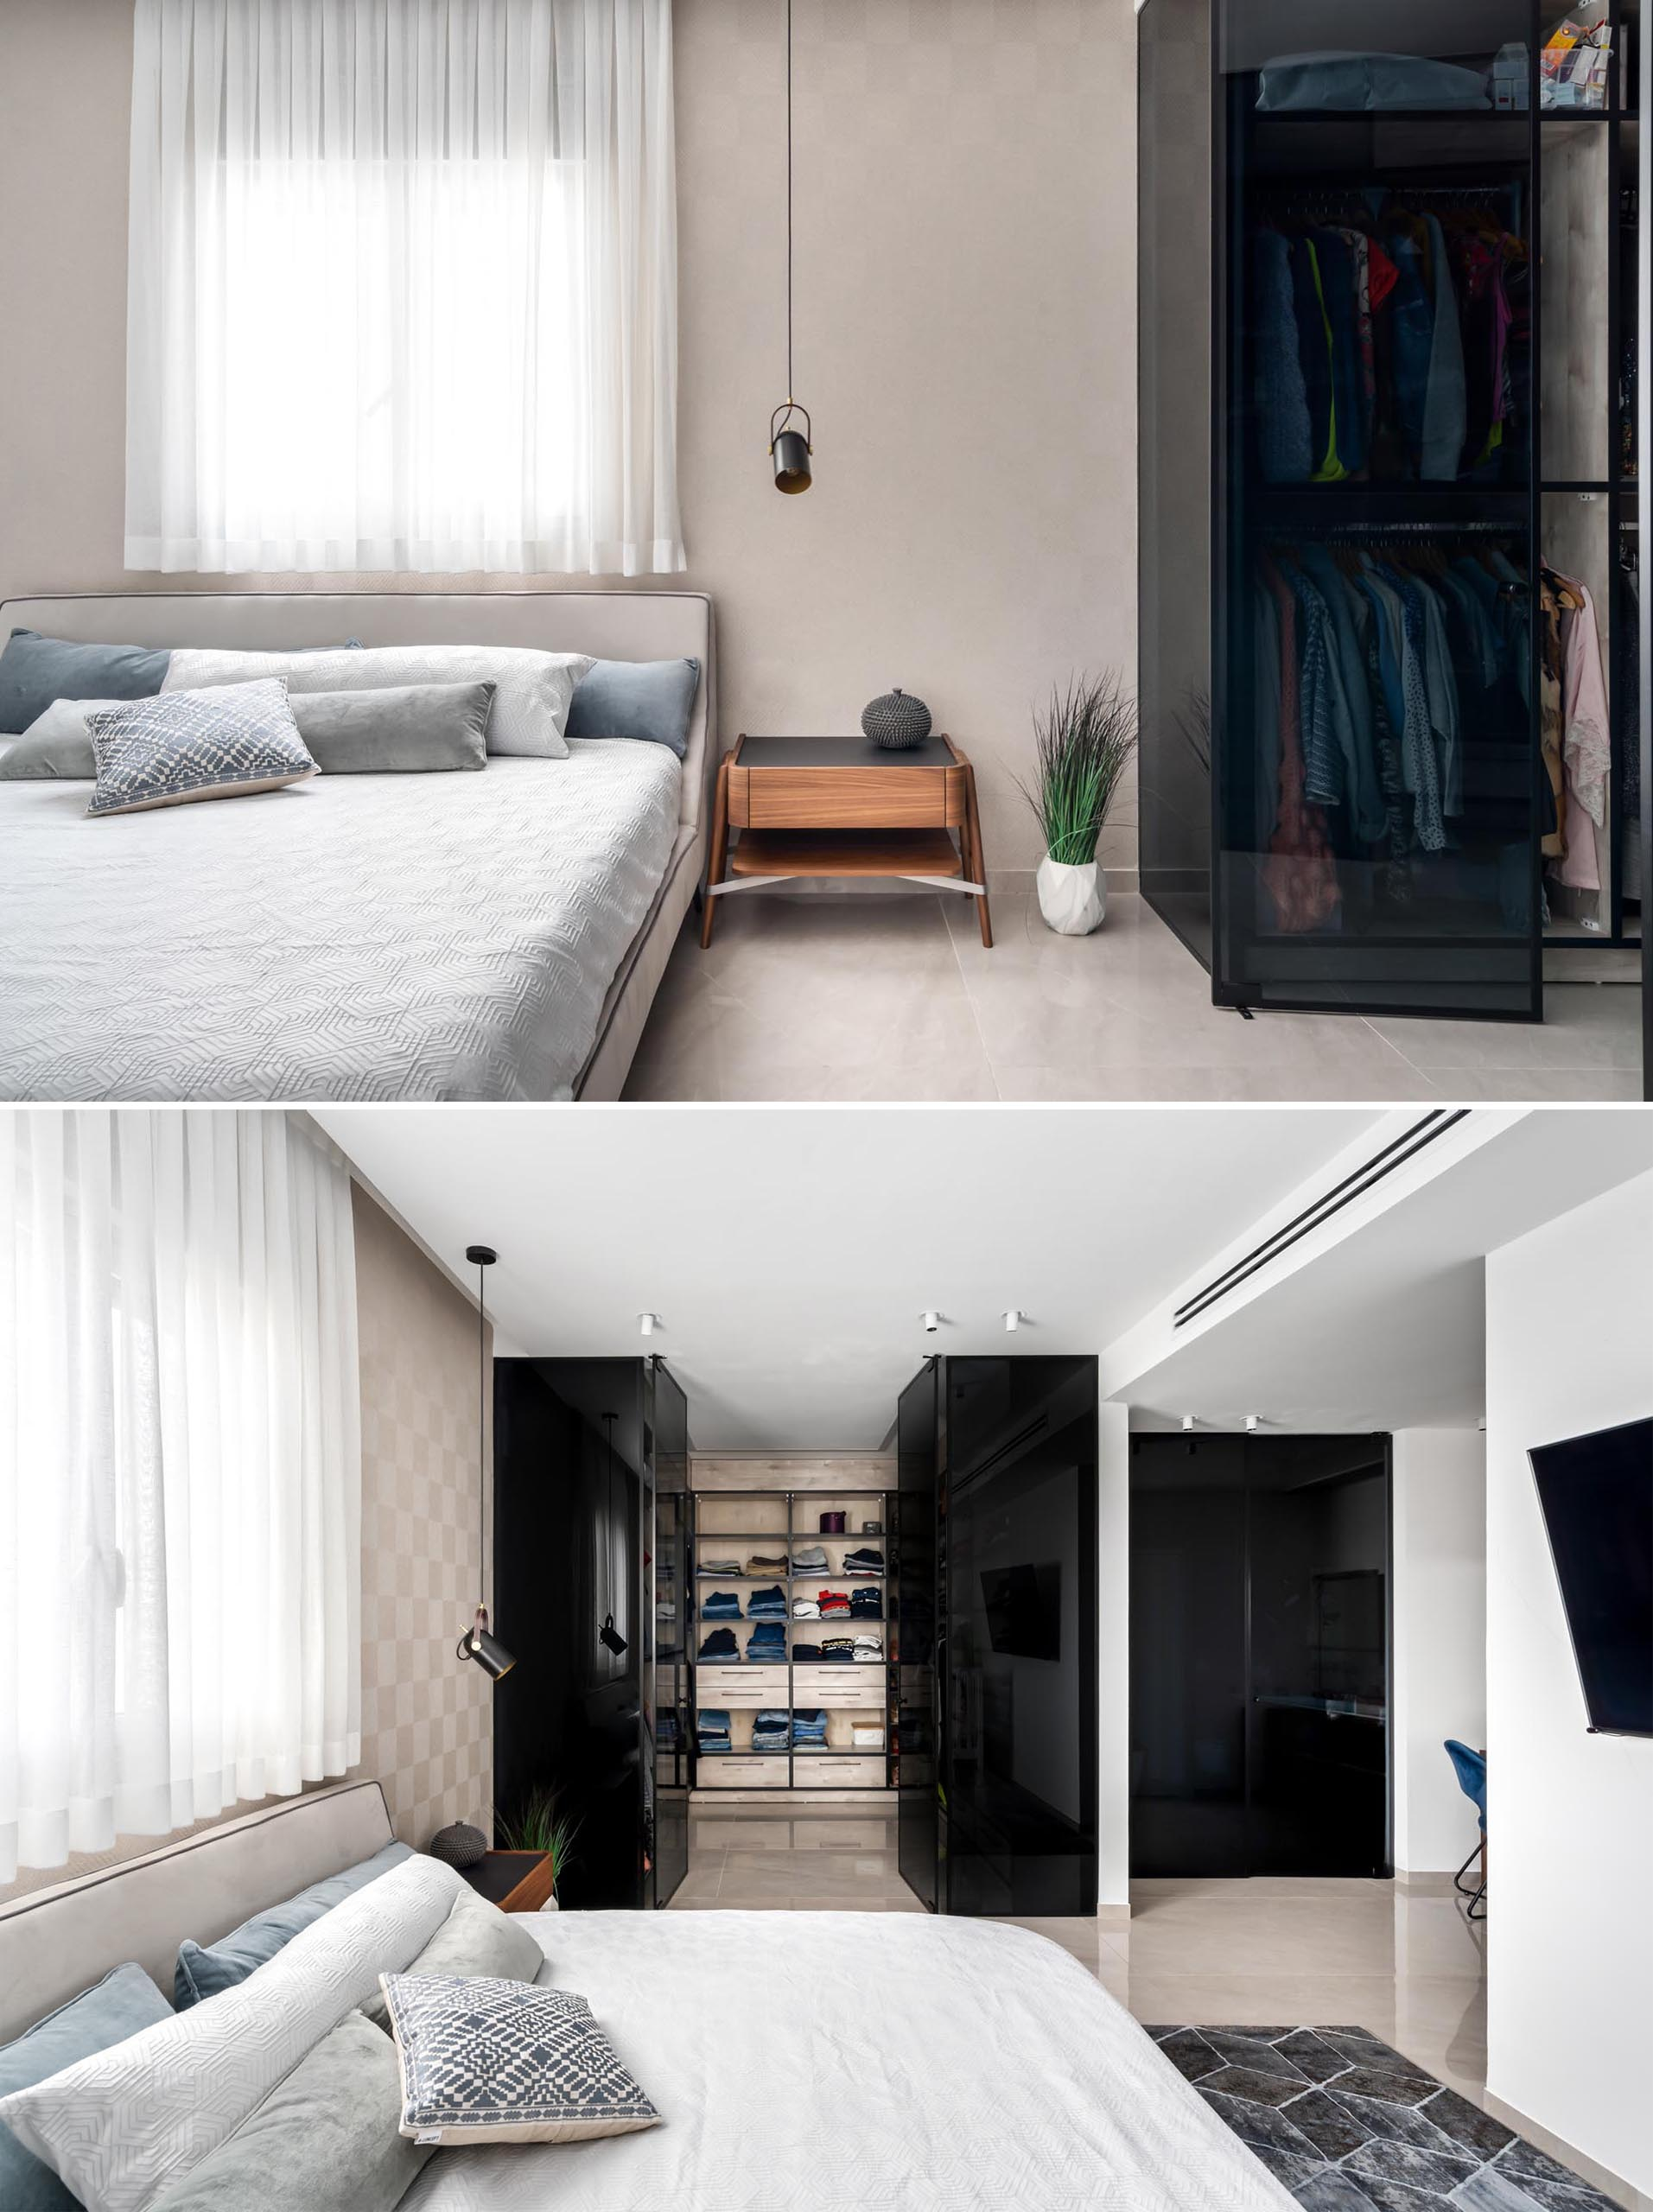 In this primary bedroom, light walls are contrasted by a black glass walk-in closet.